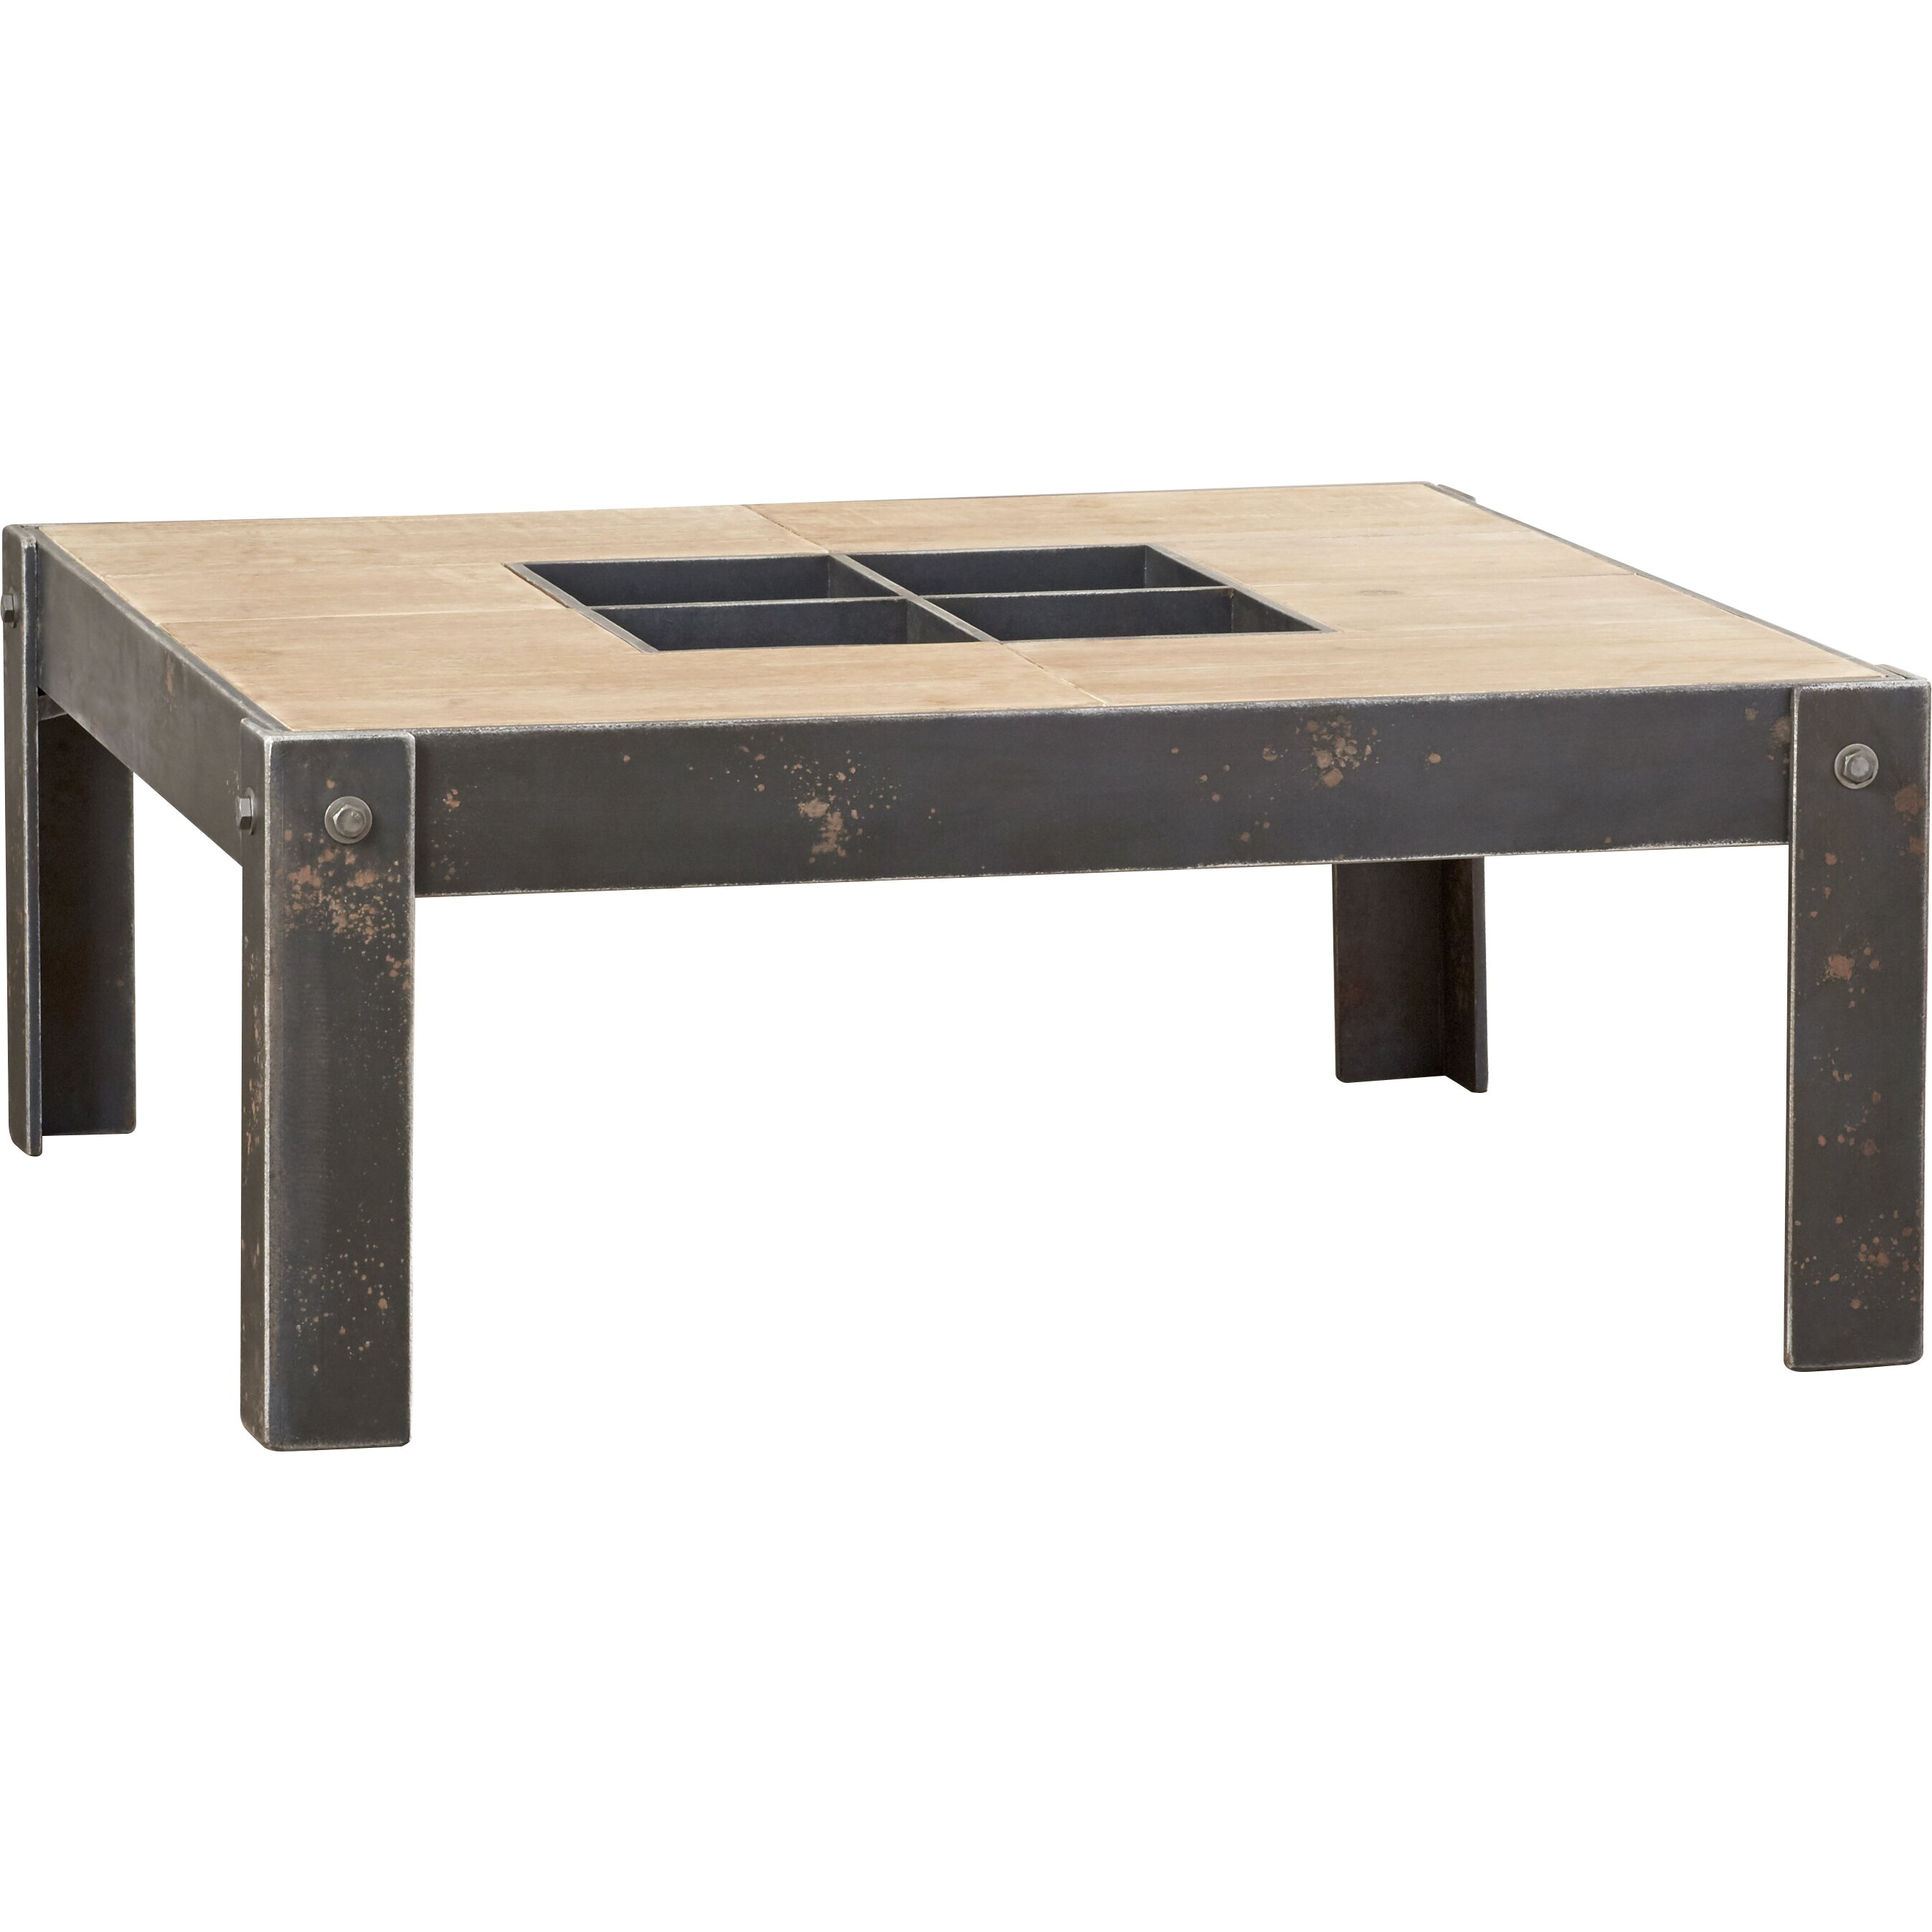 Hd Designs Tabor Collection Console Table Java Brown Hd Designs